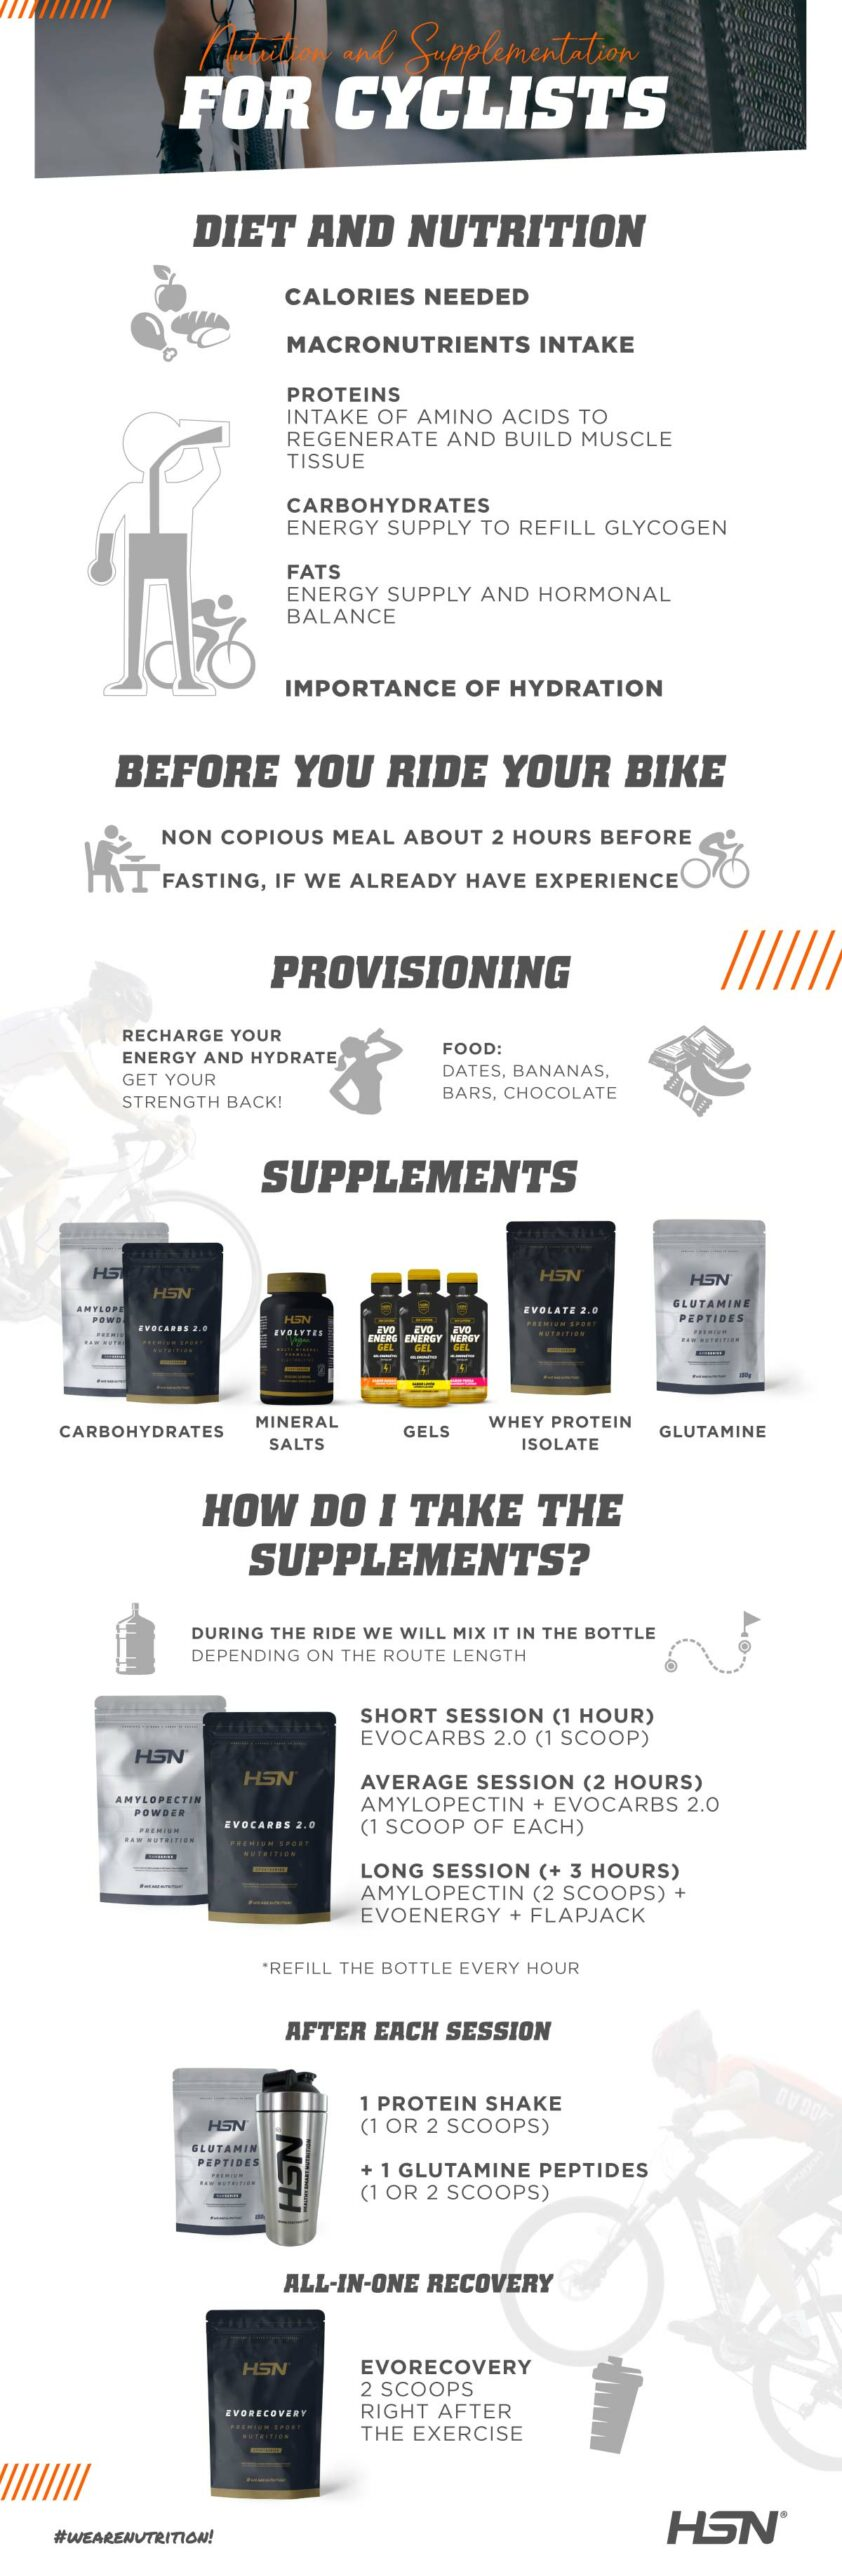 Nutrition and Supplementation for Beginners Cyclists Info